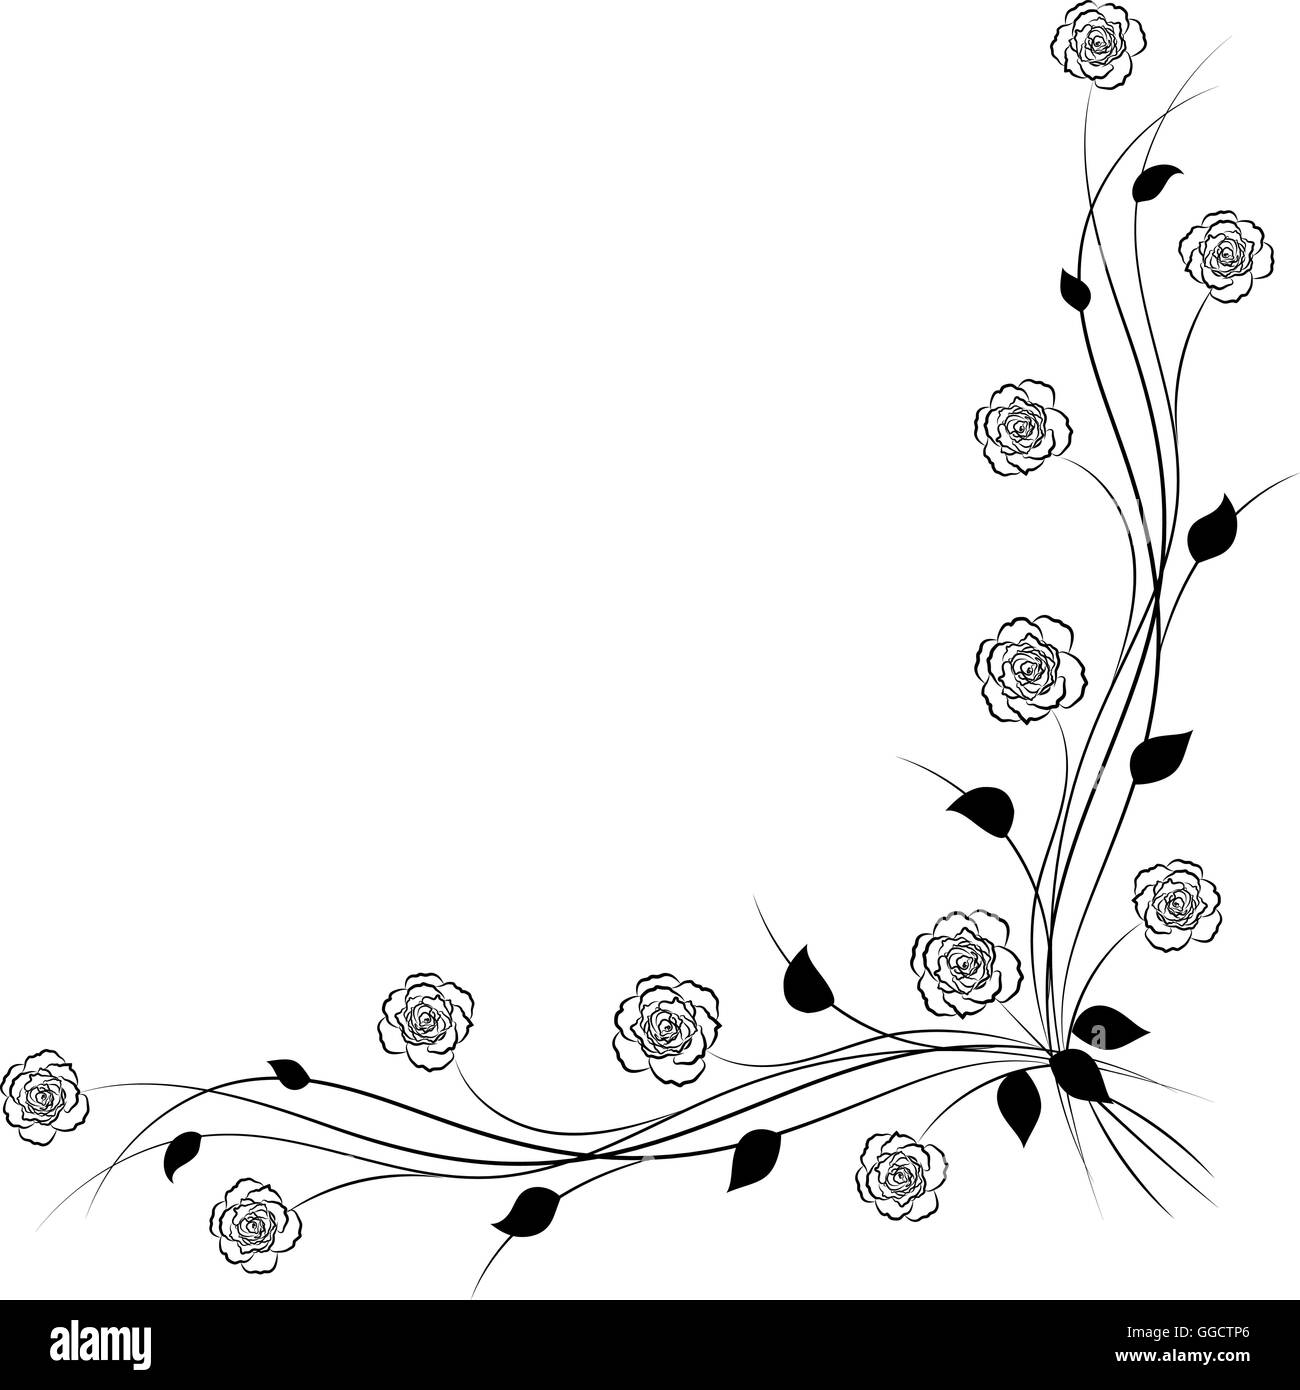 Six Black Flower Design Stock Images: Simple Floral Background In Black And White Stock Vector